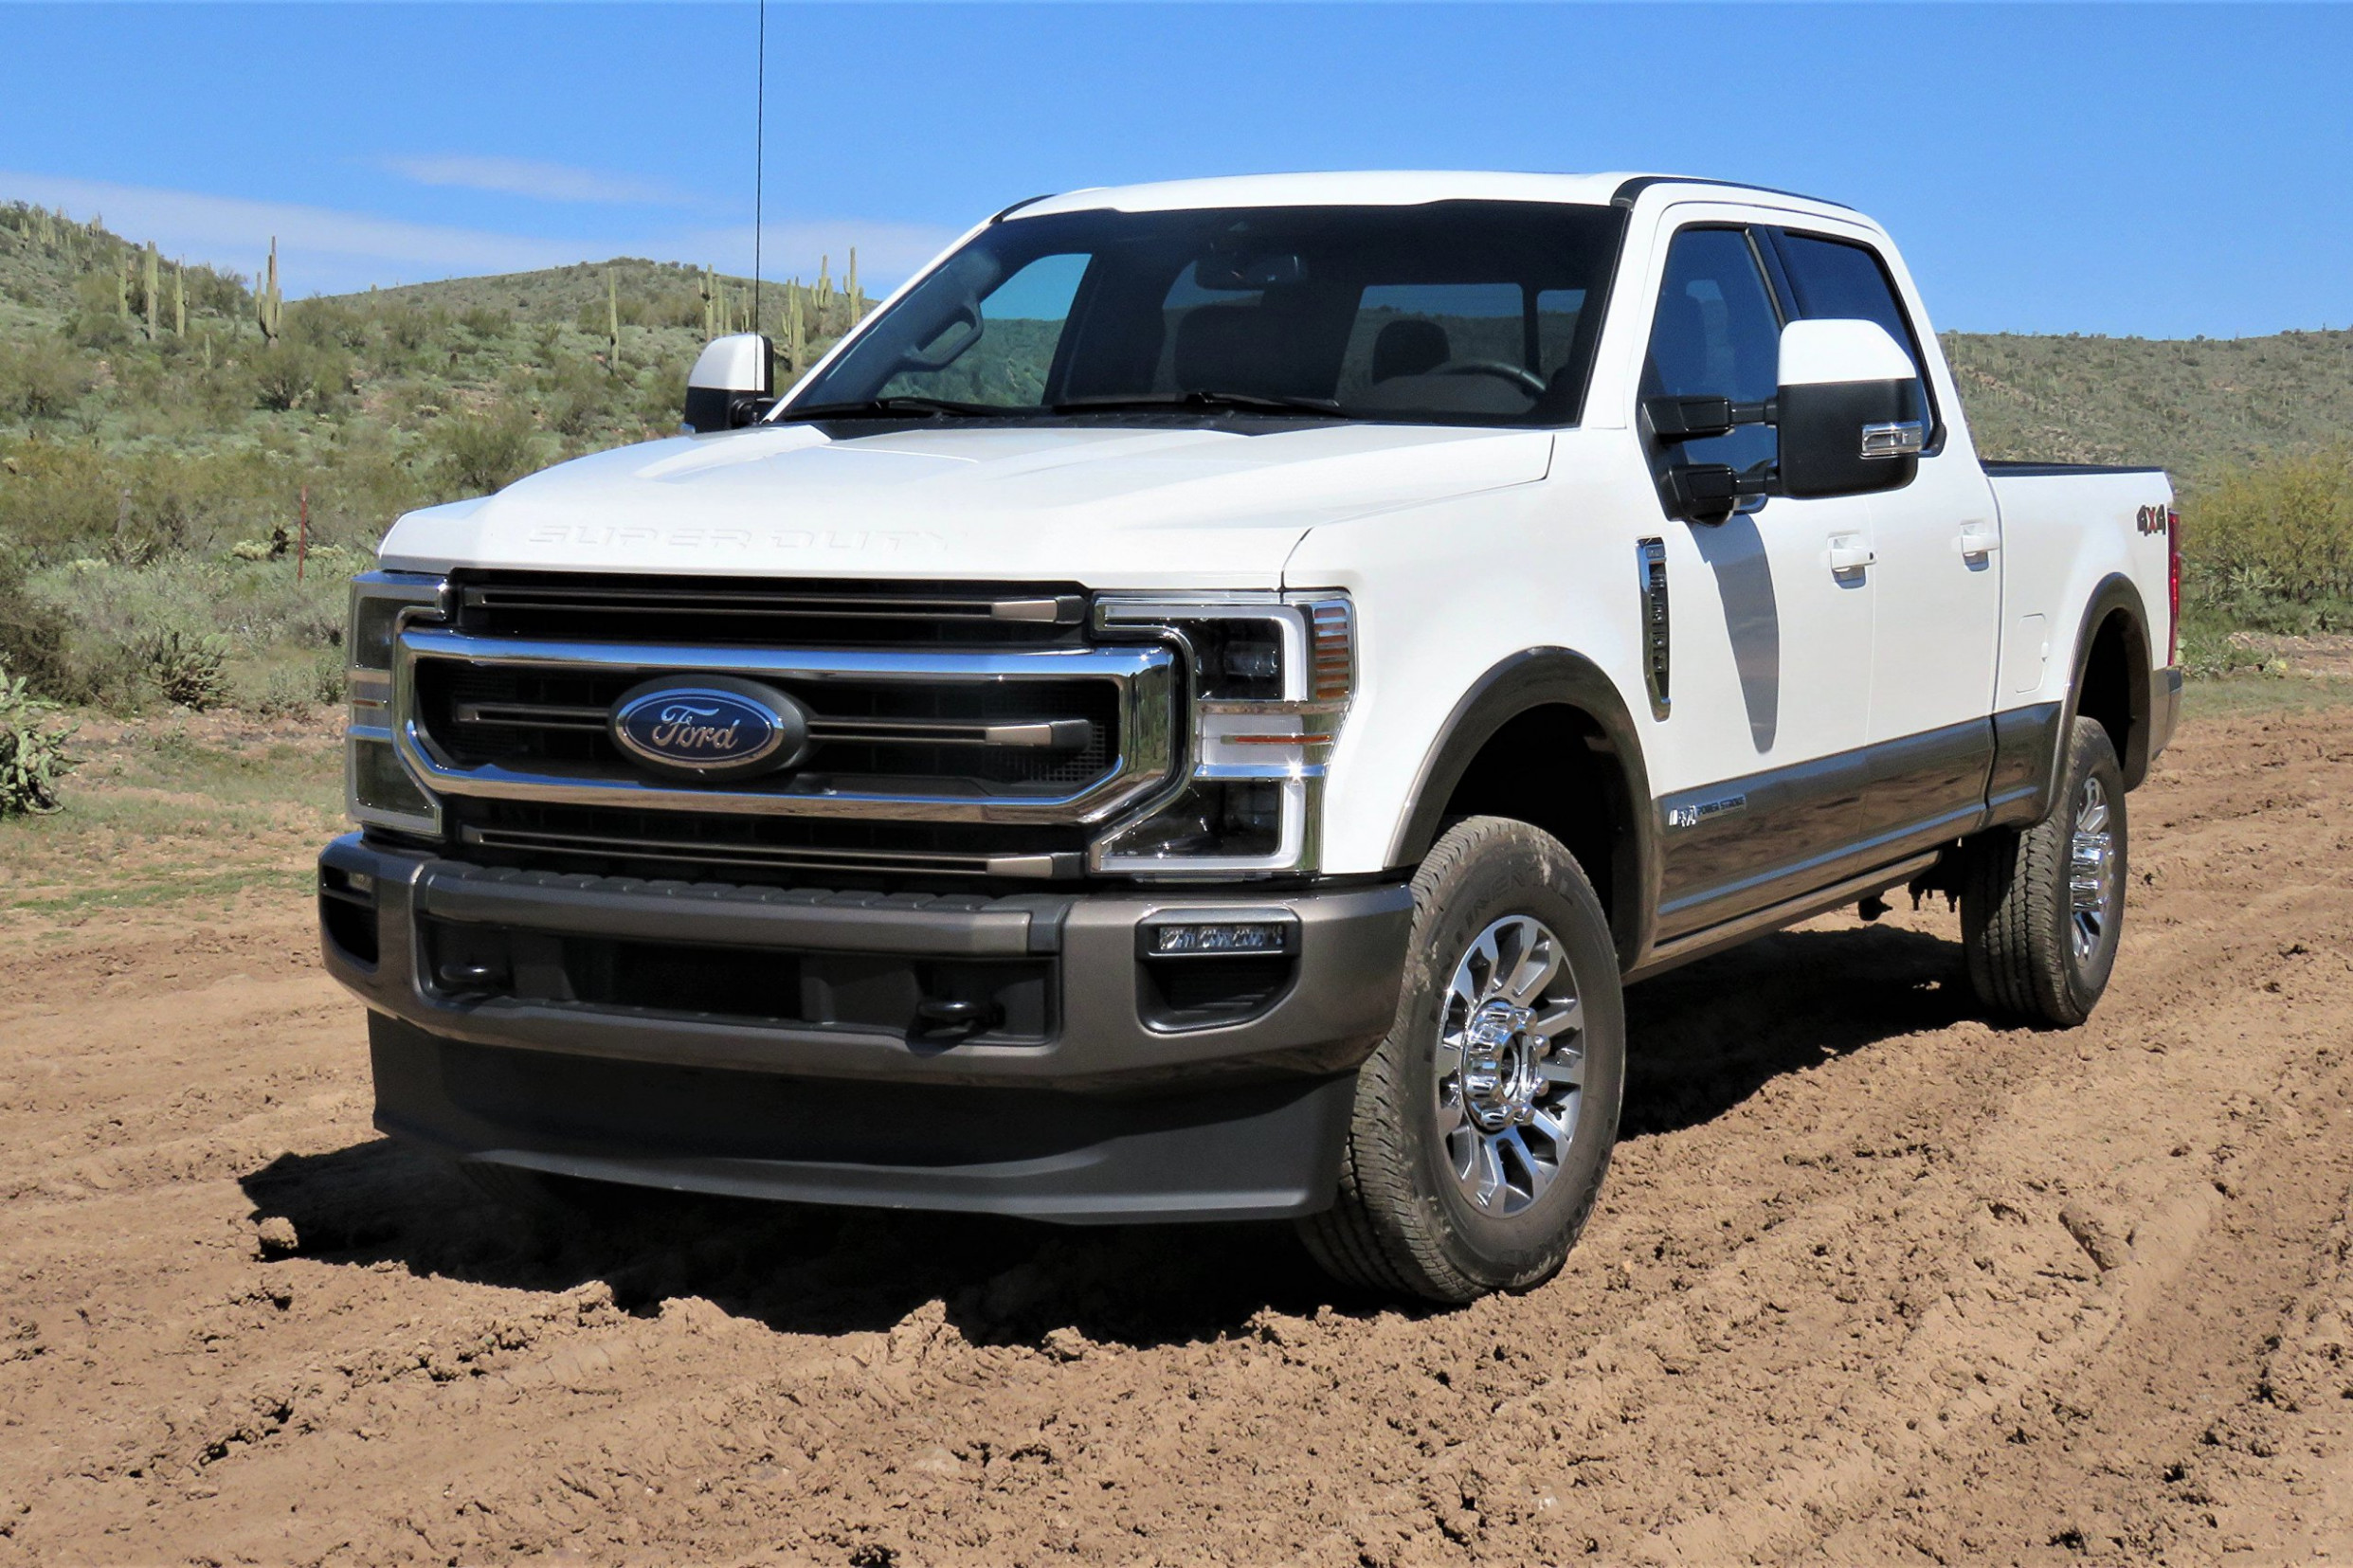 Driven: 8 Ford F8 Super Duty combines capability, driving finesse - 2020 ford king ranch f350